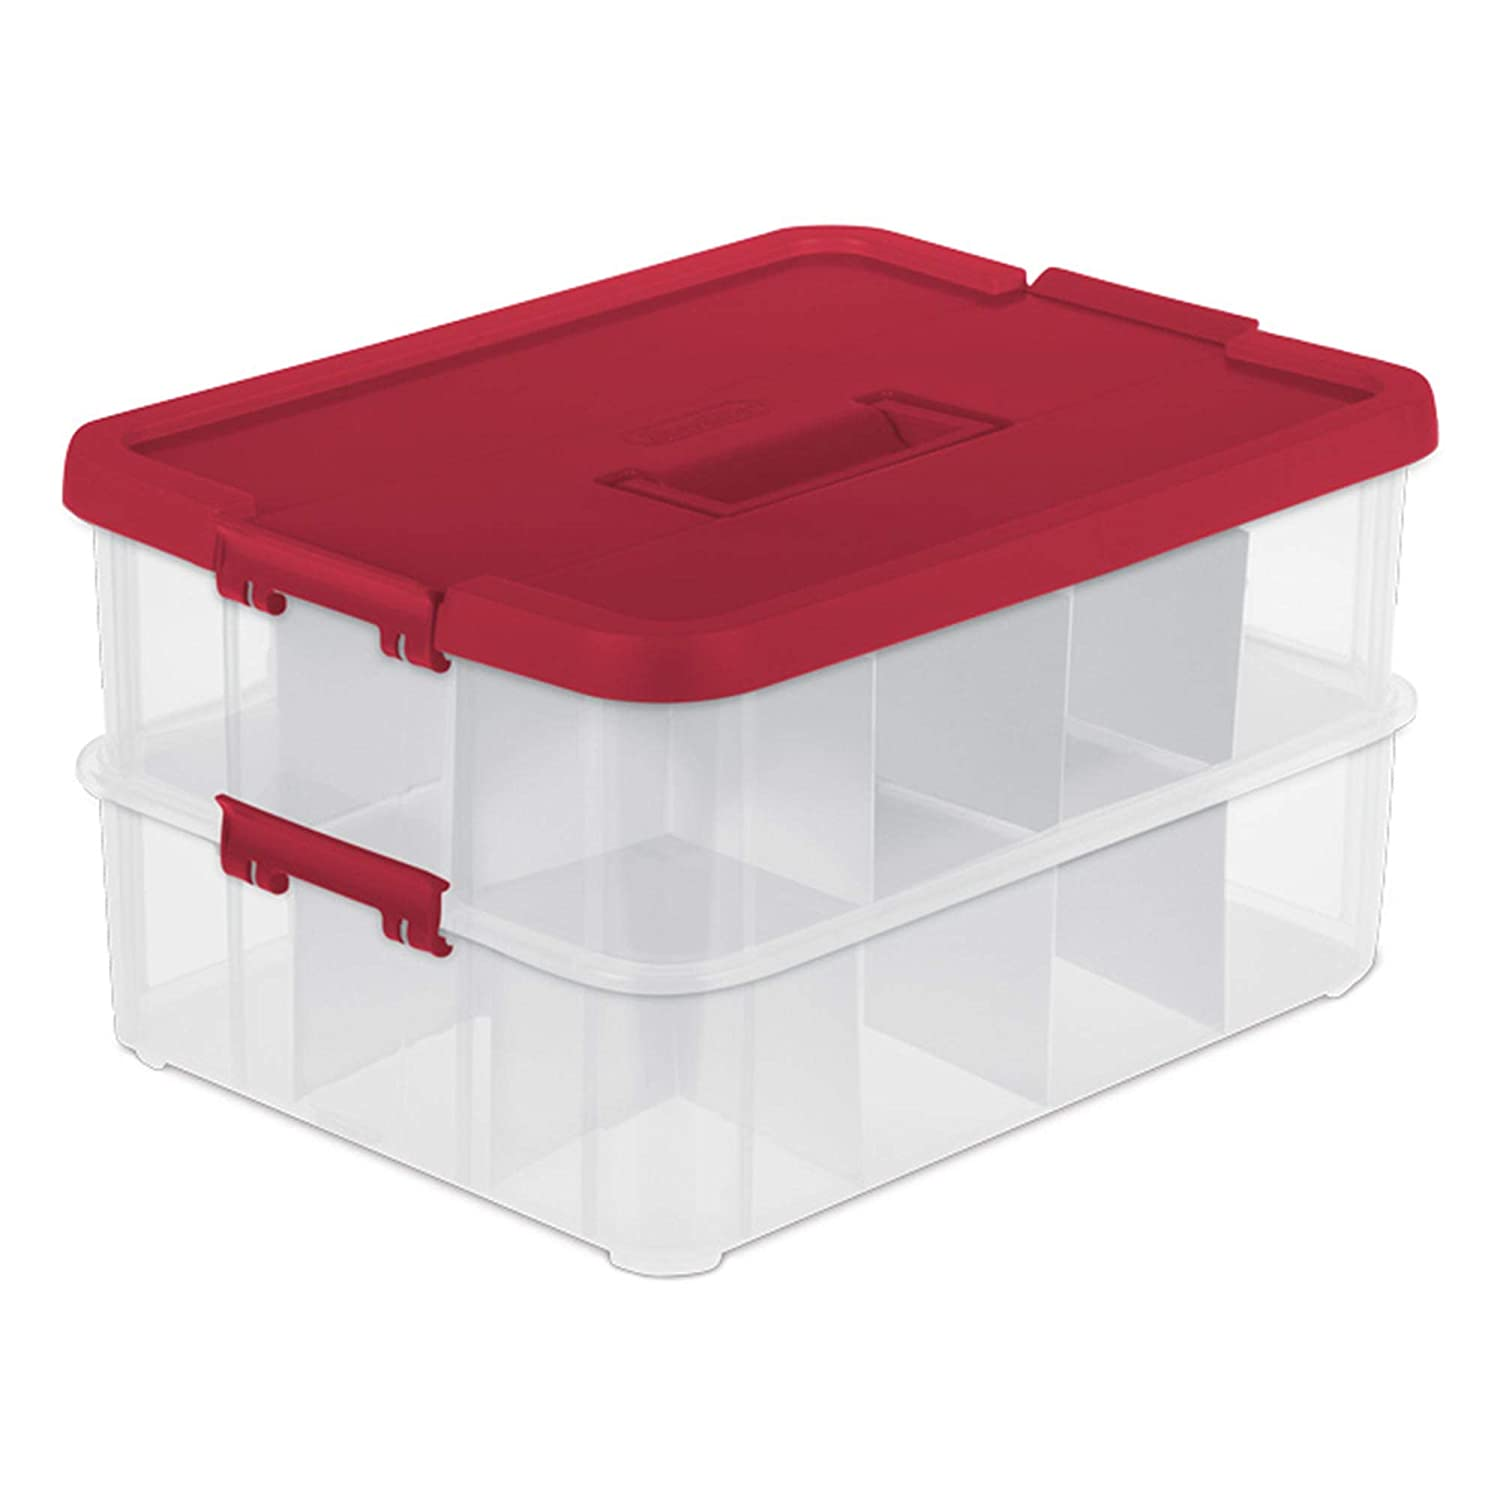 Sterilite 1427 Stack & Carry 2 Layer 24 Ornament Storage Box, Red Lid and Handle, See-through layers No Model